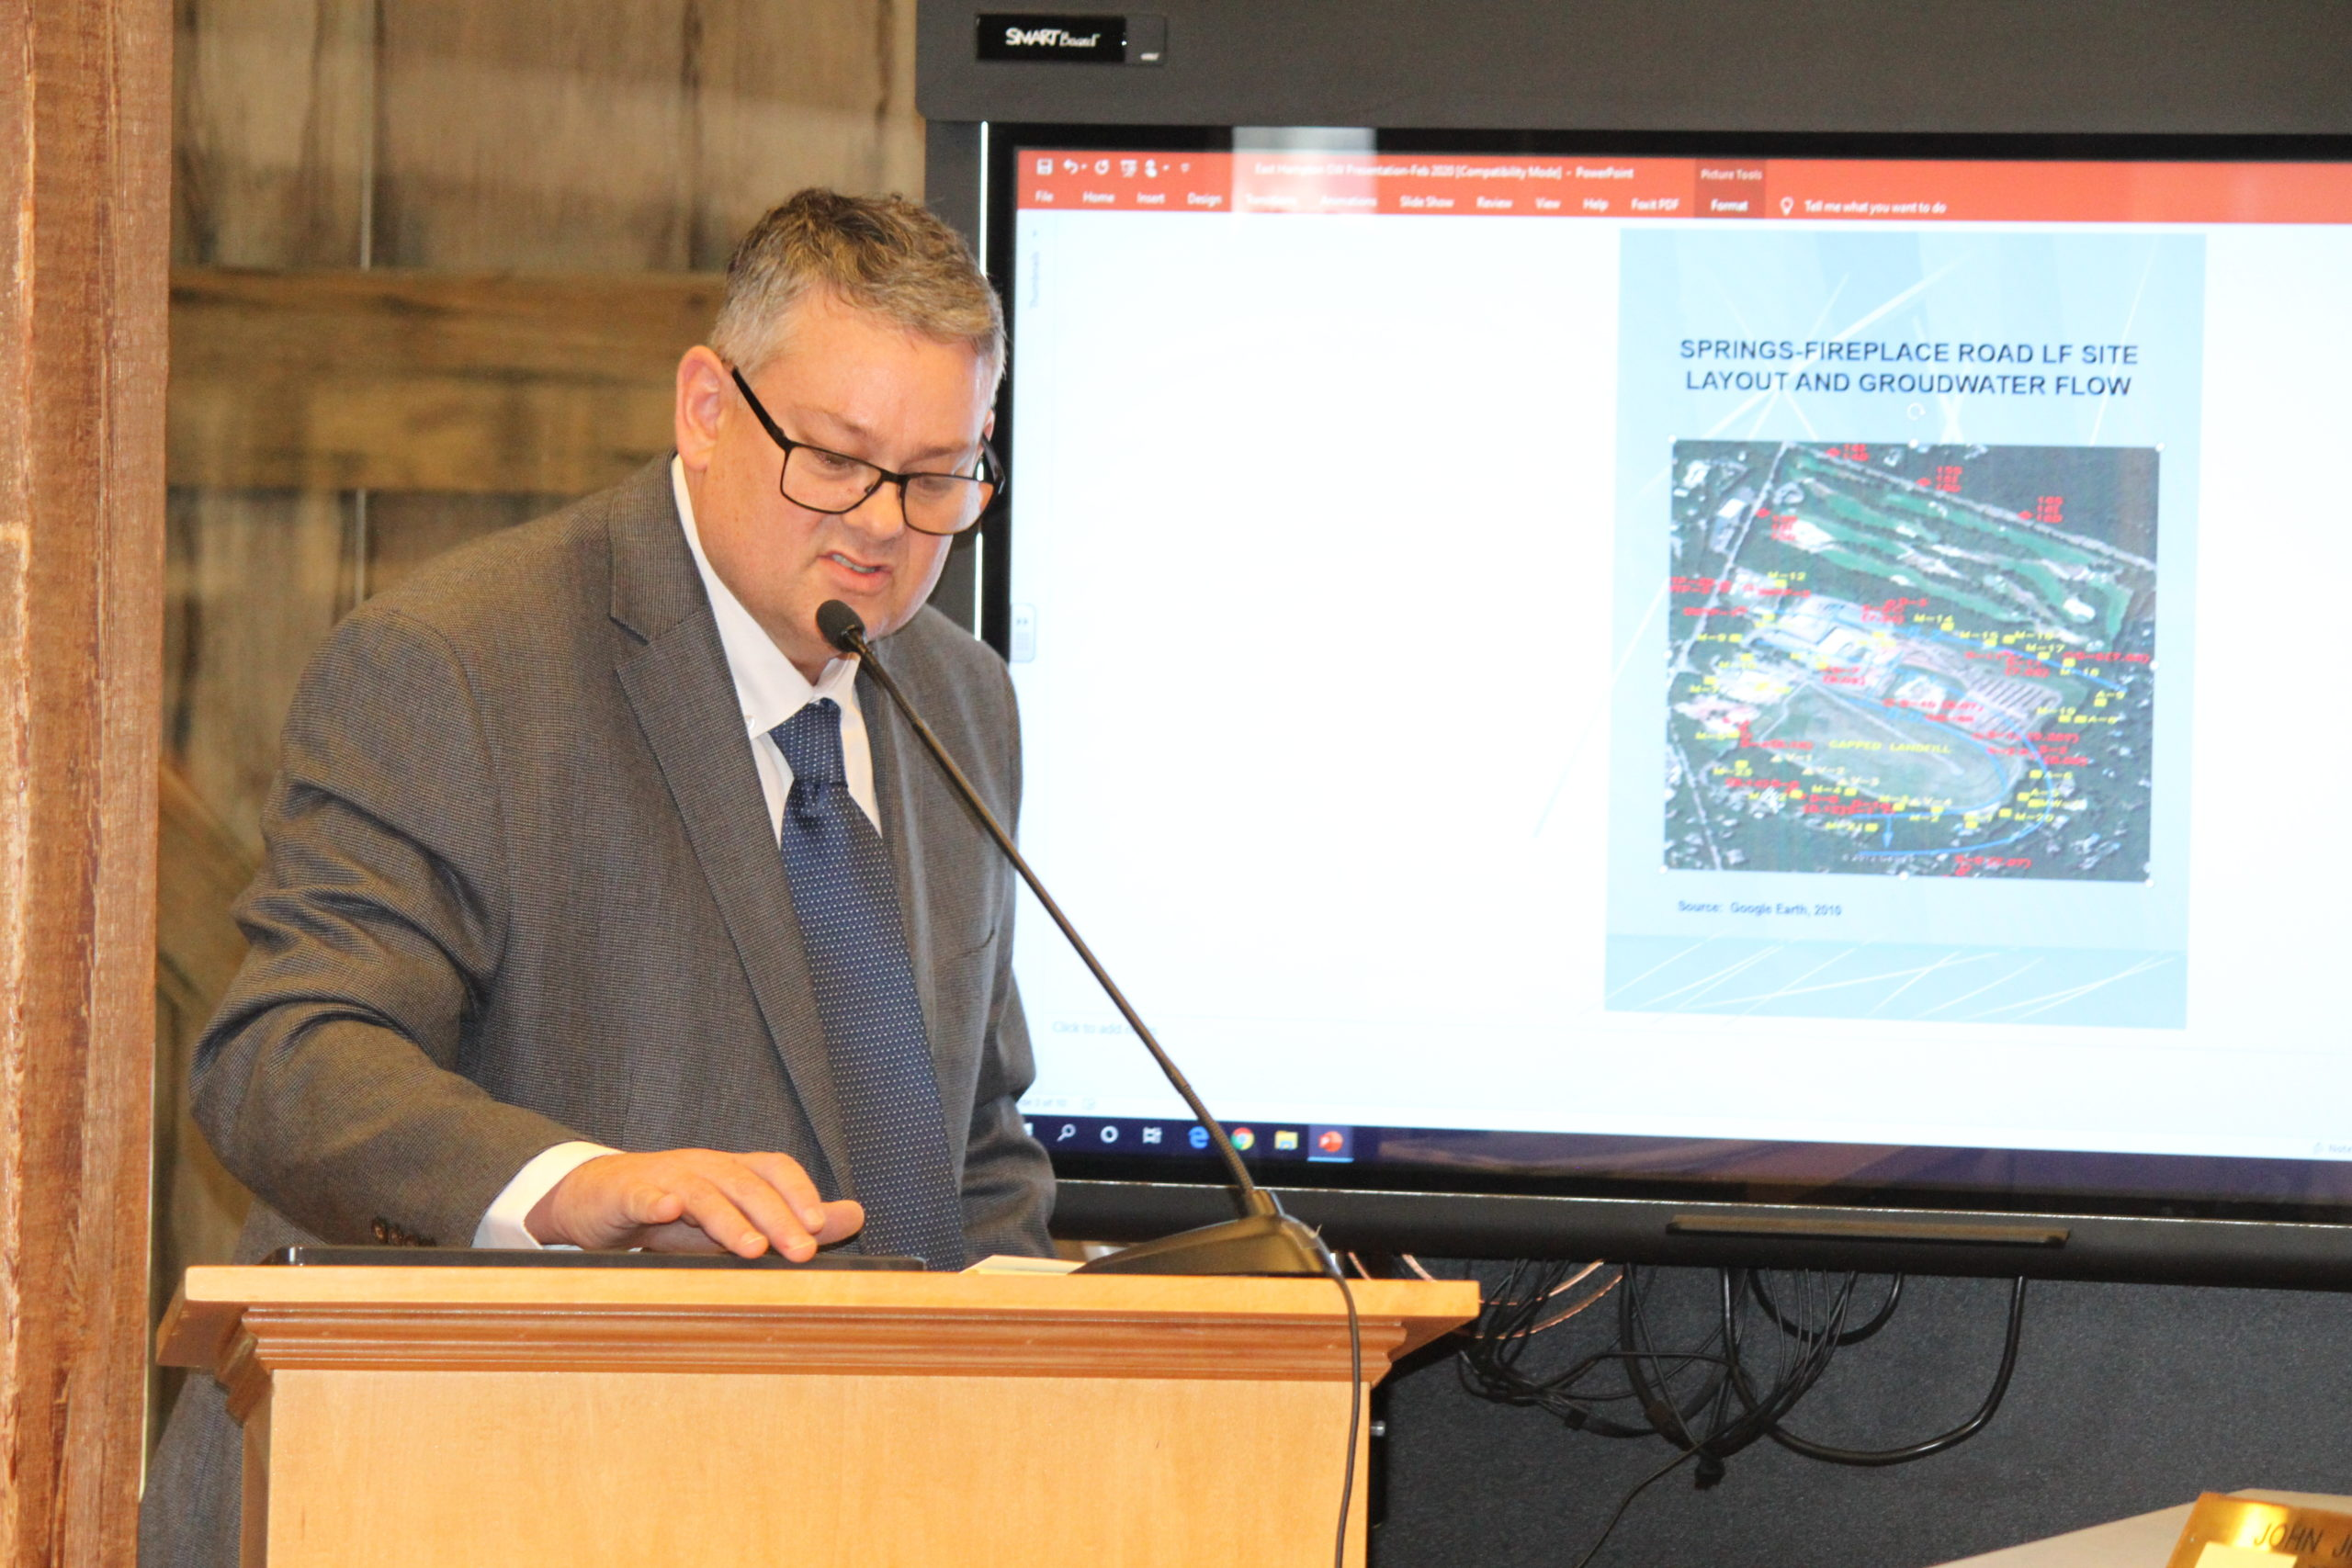 Engineer Benjamin Cancemi told the East Hampton Town Board this week that groundwater contamination below the former landfill is diminishing.